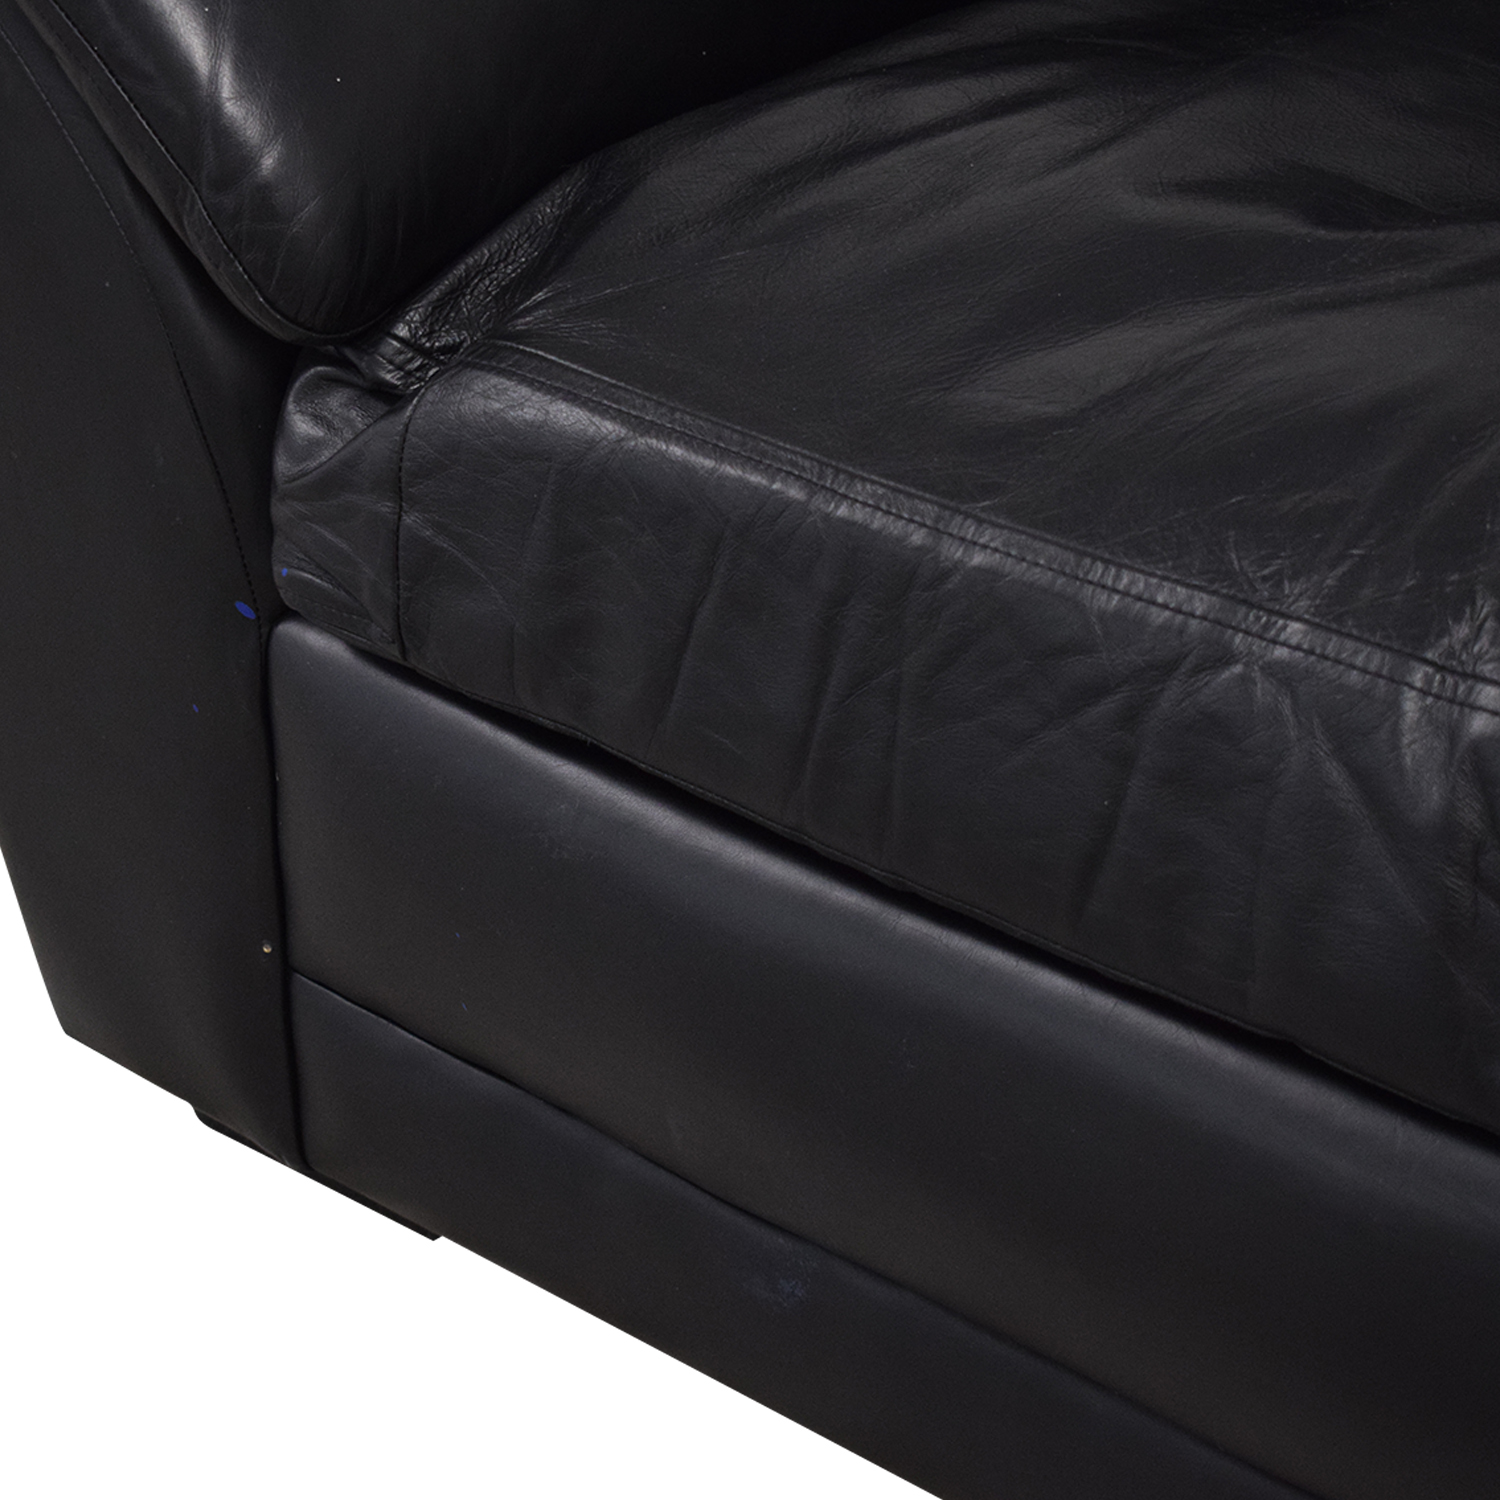 buy Castro Convertibles Castro Convertibles Leather Chair online